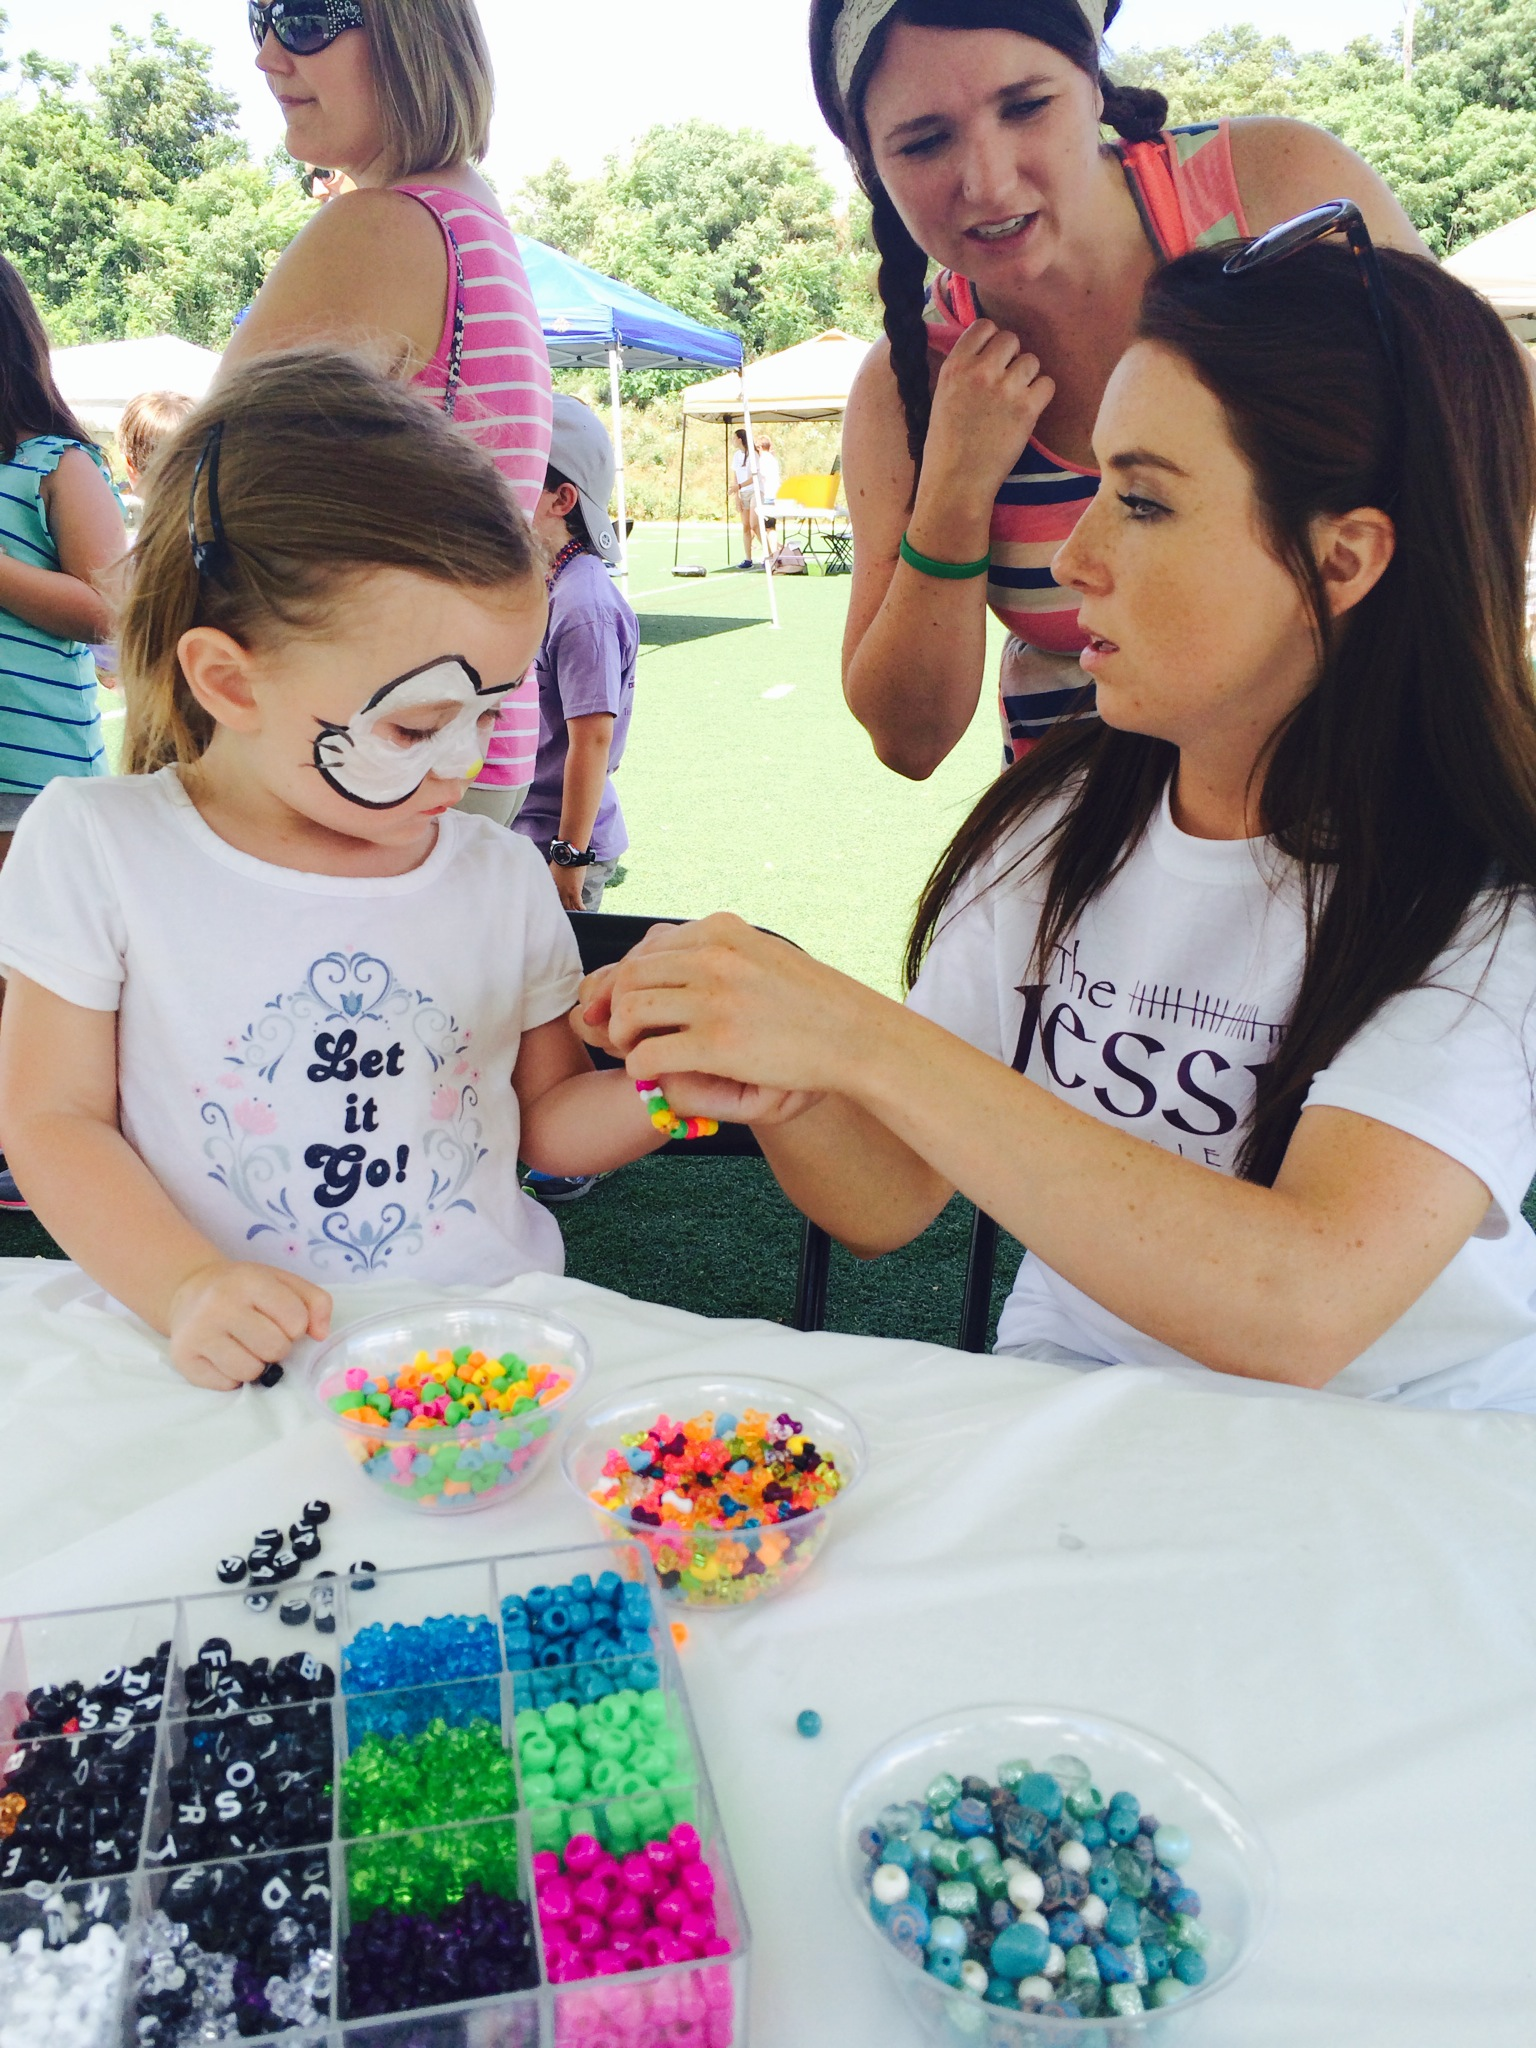 Making Jewelry at the 2016 Jessie Games